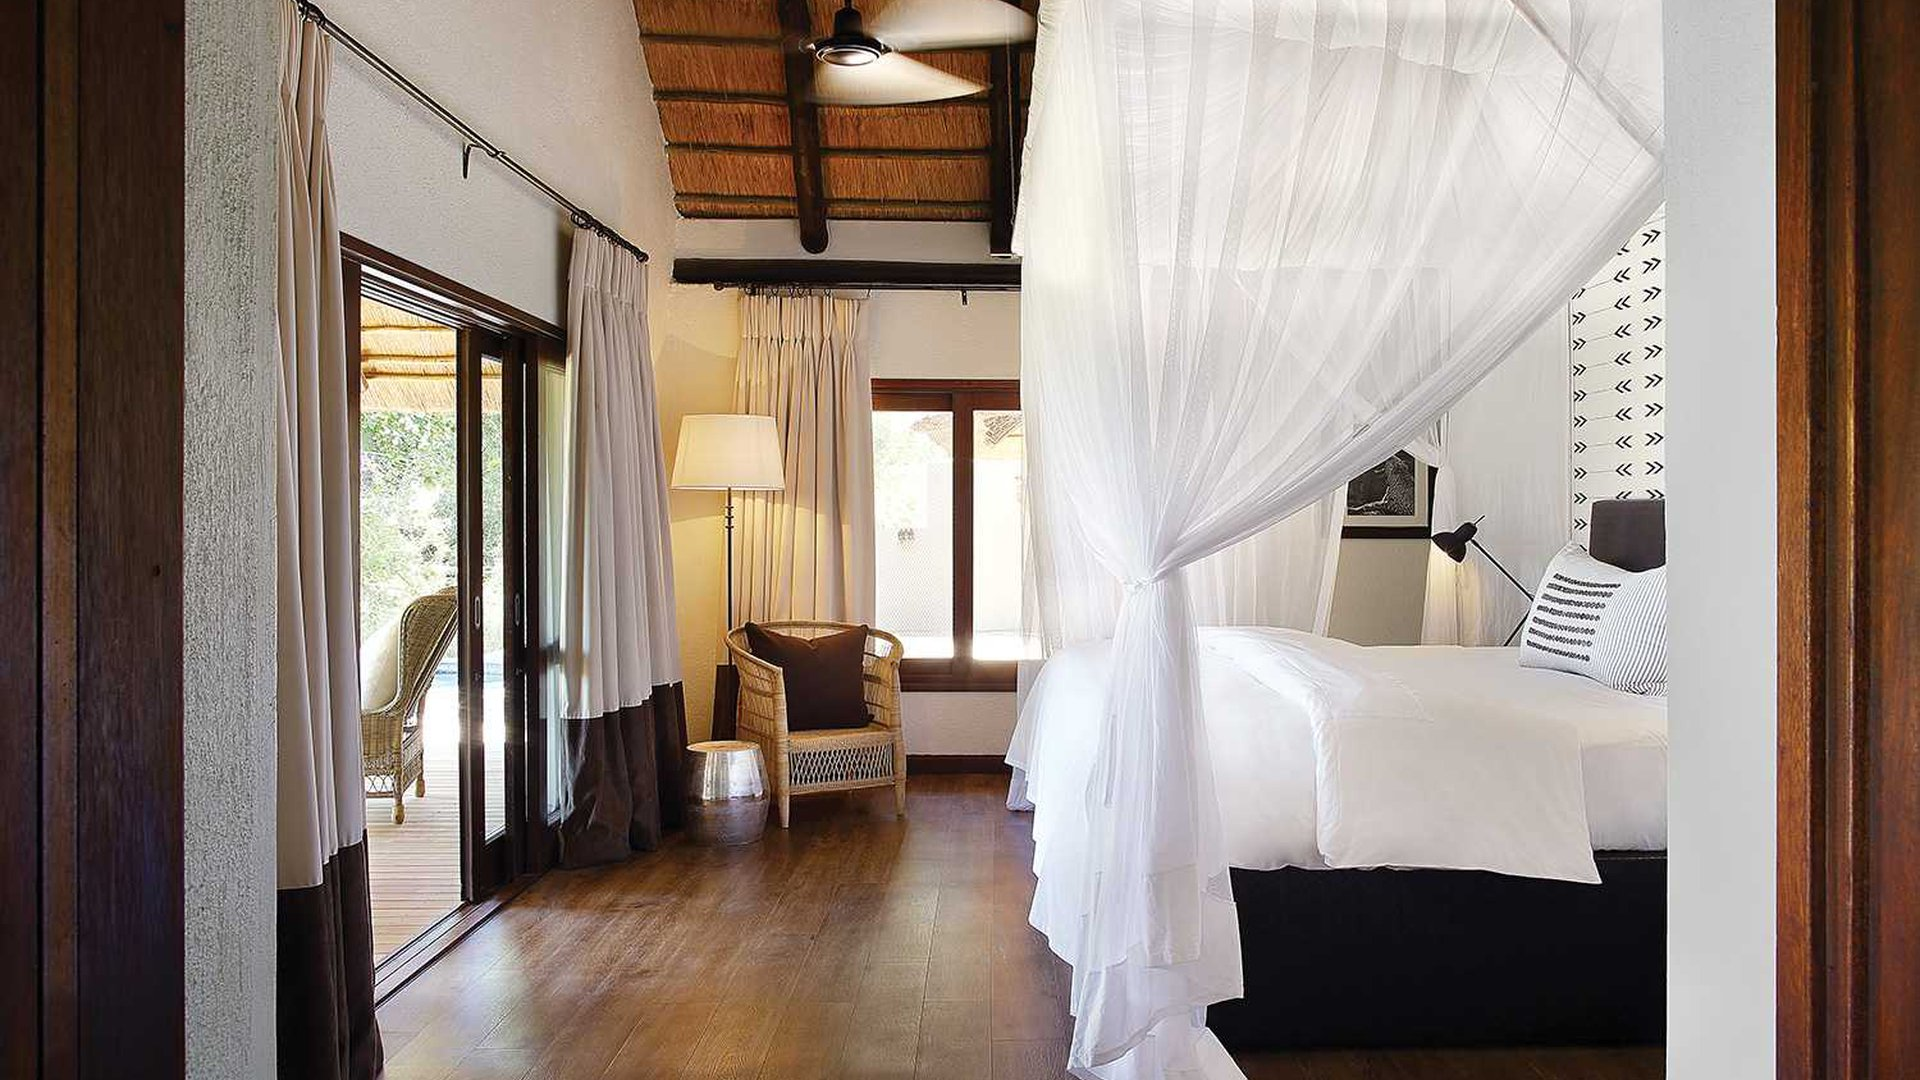 Accommodations - Thirteen nights of luxury in some of the best hotels in all of South Africa.